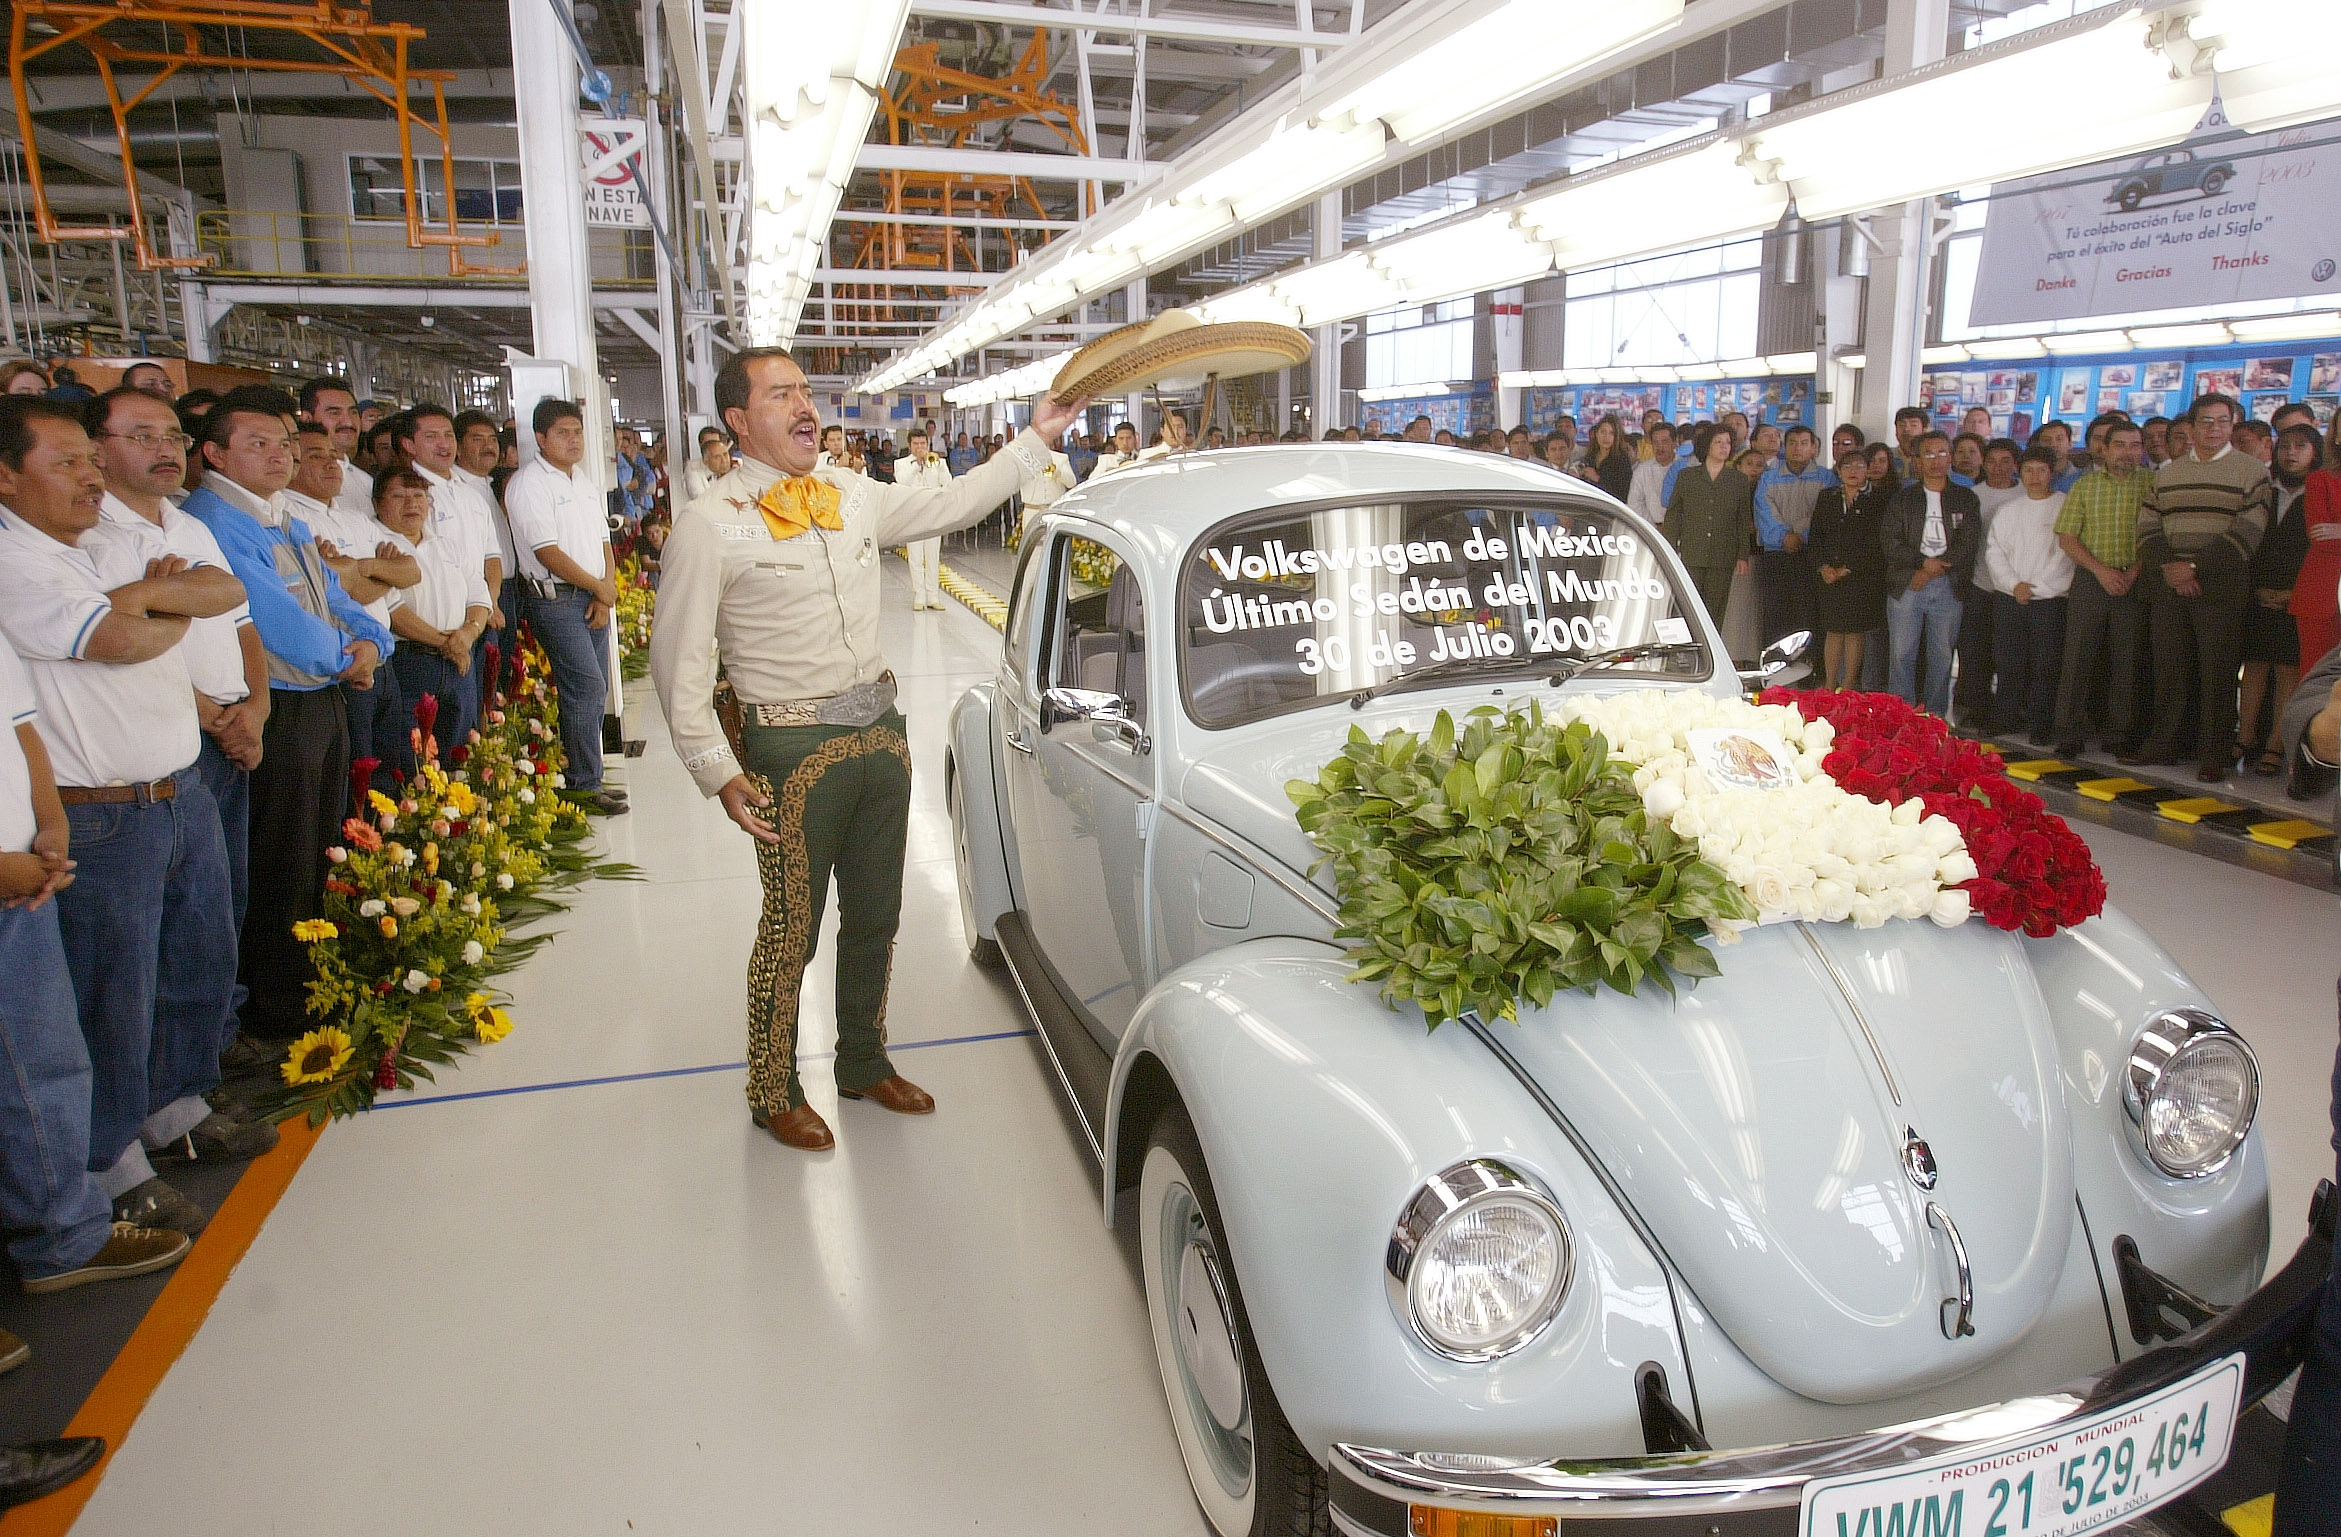 A traditional Mexican Mariachi musician places his sombrero on the roof of the very last VW beetle as it rolls off the production line at VW's Puebla plant Wednesday, July 30, 2003. The car will be sent to a museum in Wolfsburg, Germany. The 300 employees working on the bug assembly line will be reassigned to other departments at the factory, which also produces Jettas and the modern new Beetle.  (AP Photos/Andrew Winning, pool)